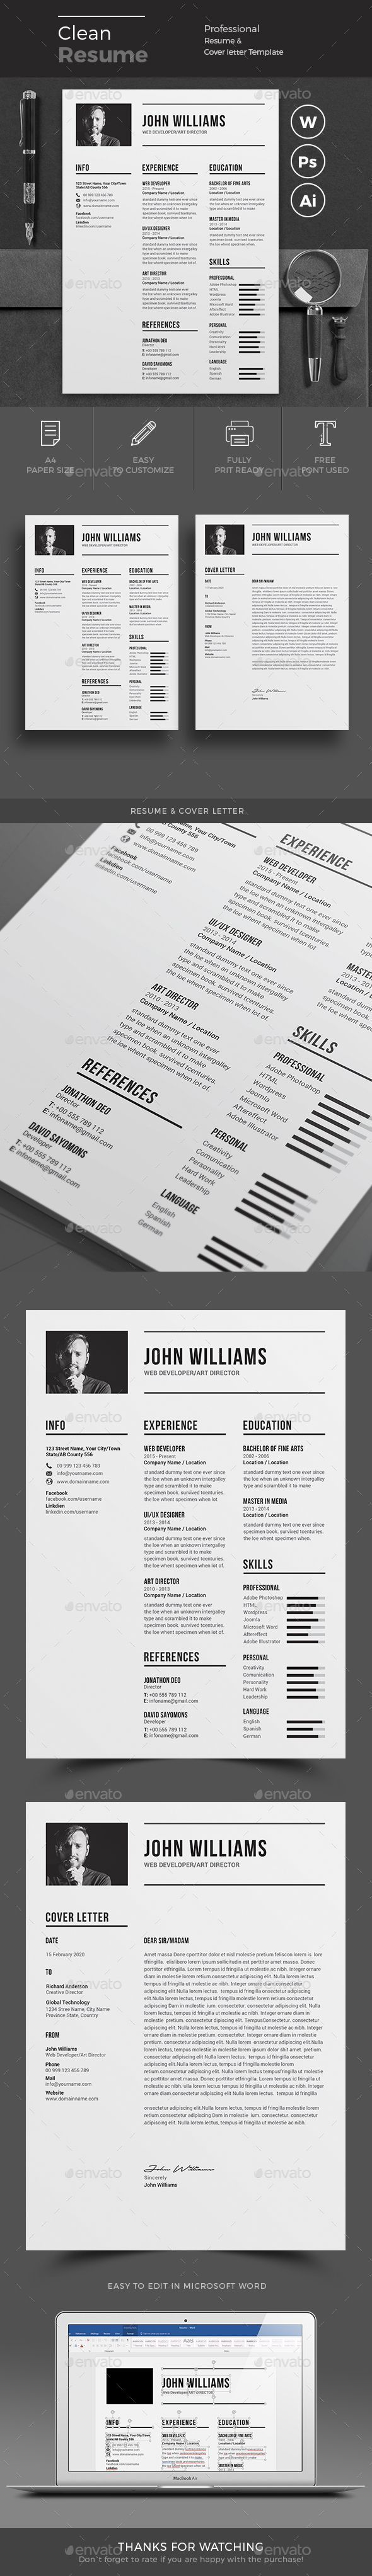 Resume Maker For Mac Resume Template  Resume Builder  Cv Template  Free Cover Letter .